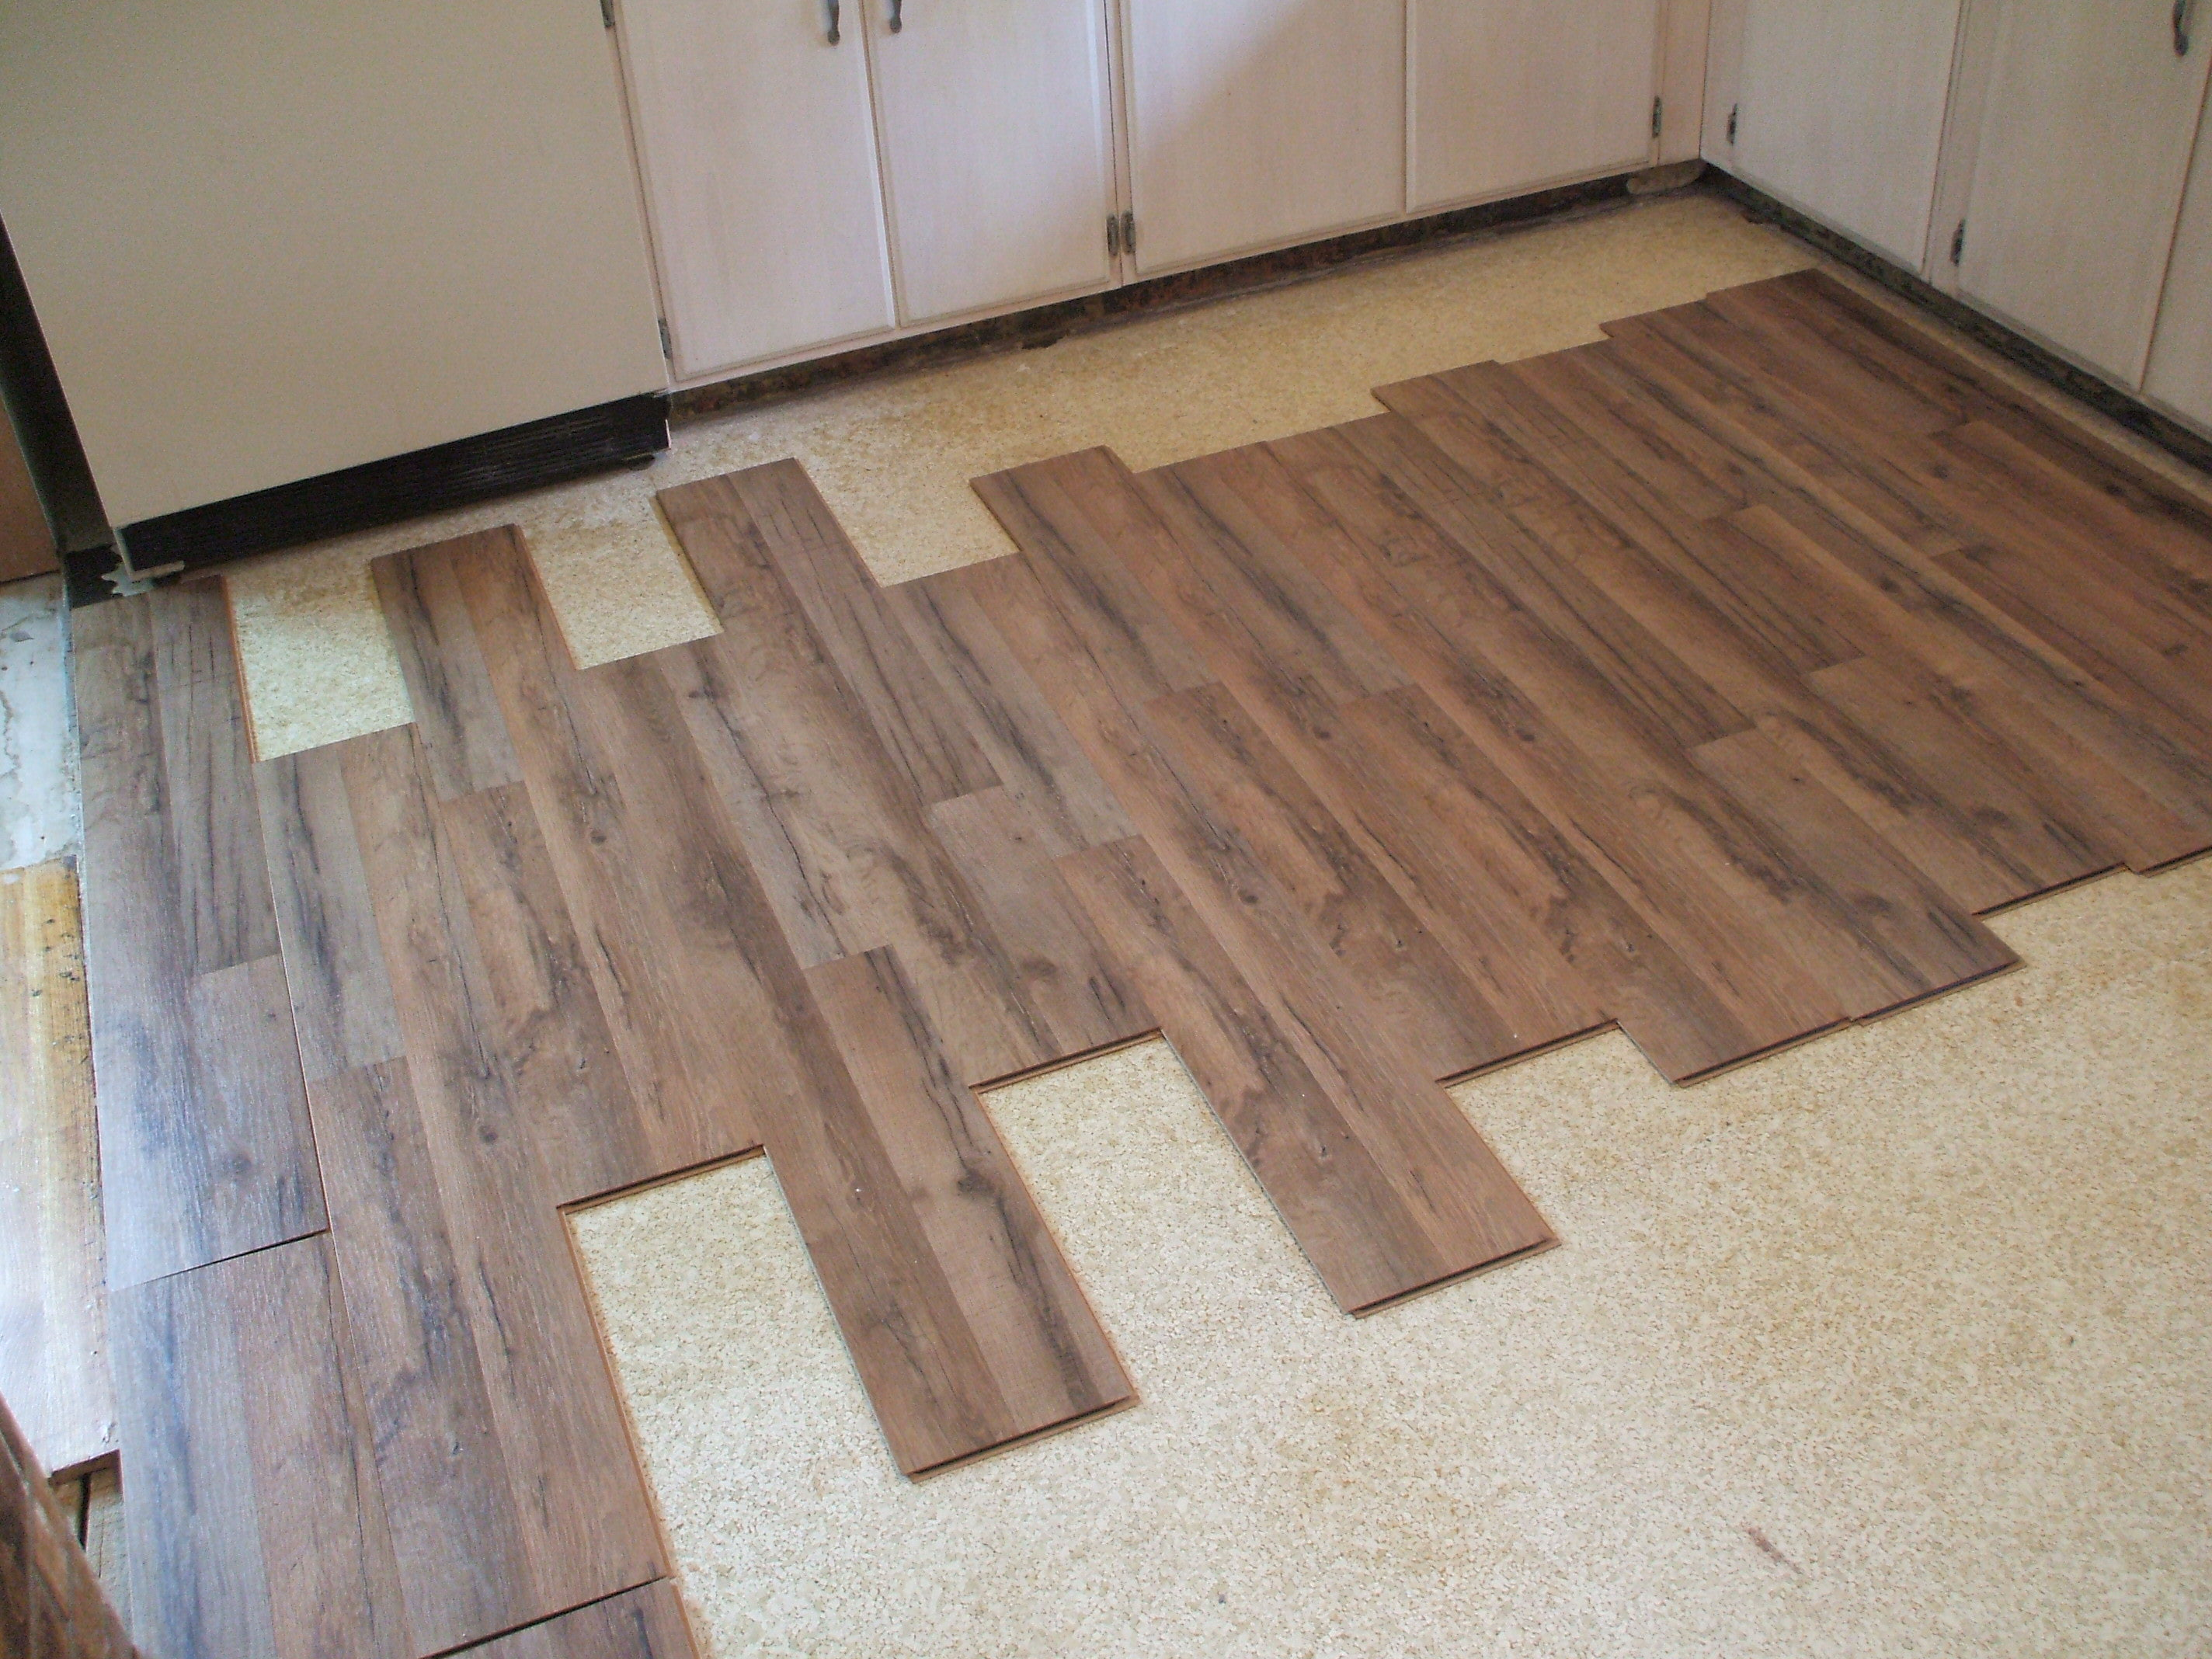 Tiles For Kitchen Floors Flooring Options For Your Rental Home Which Is Best